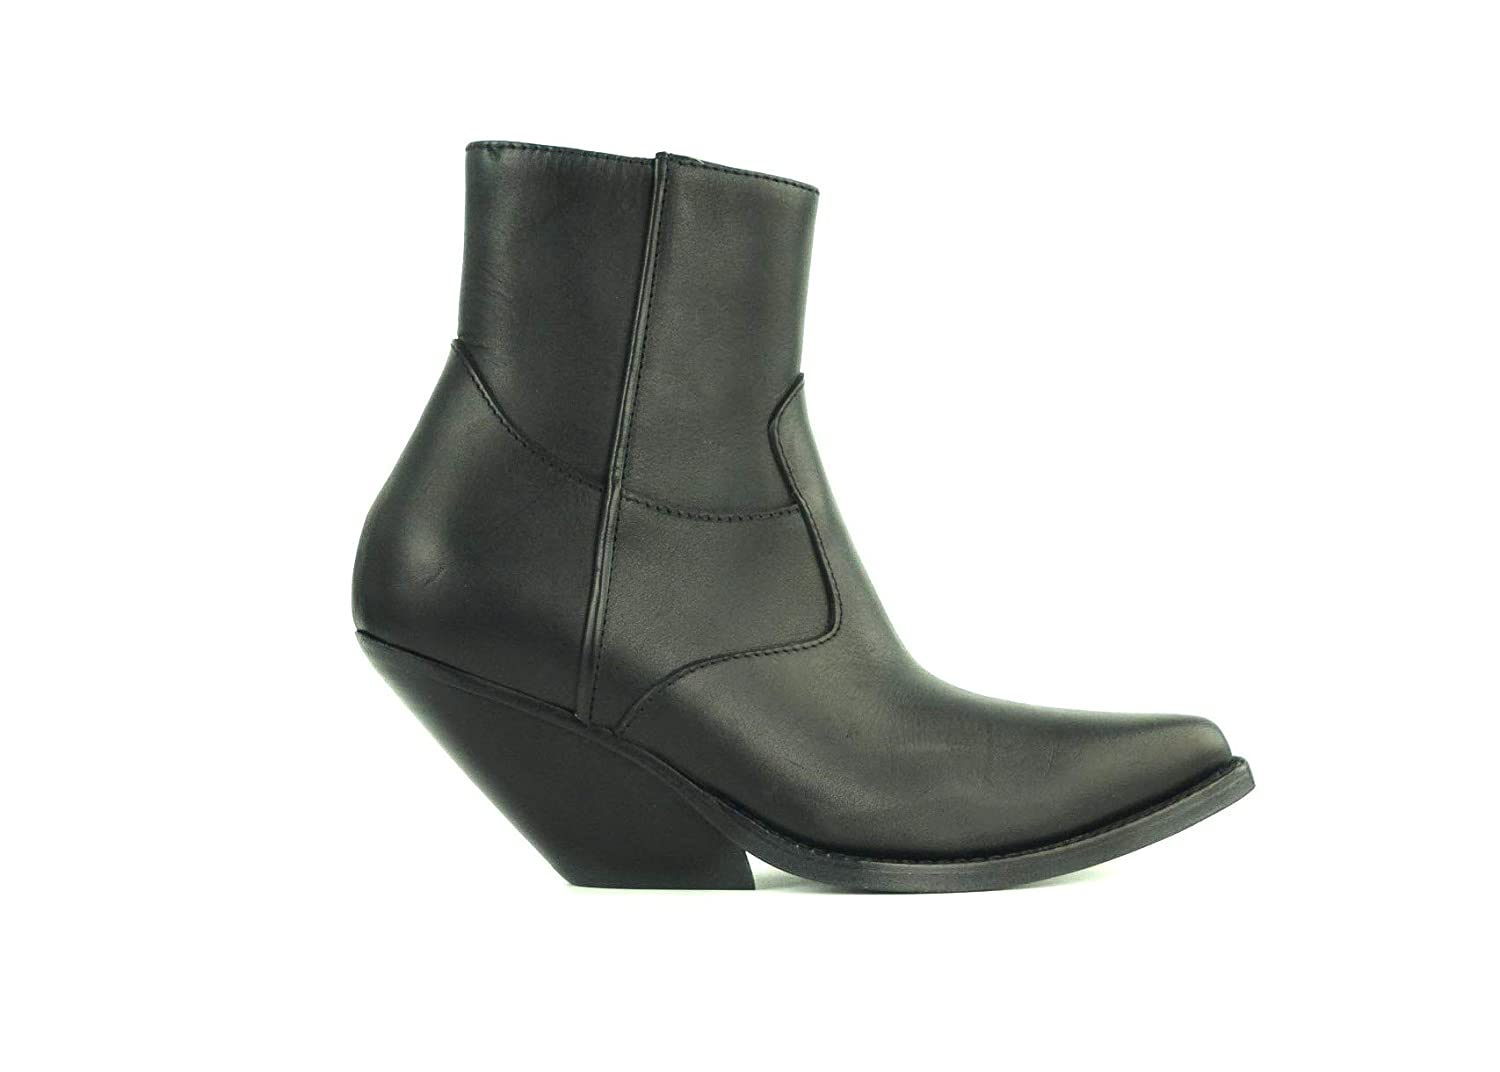 8bb0ba5cffdaf Amazon.com | Vetements Women's Black Leather Western Cowgirl Ankle ...